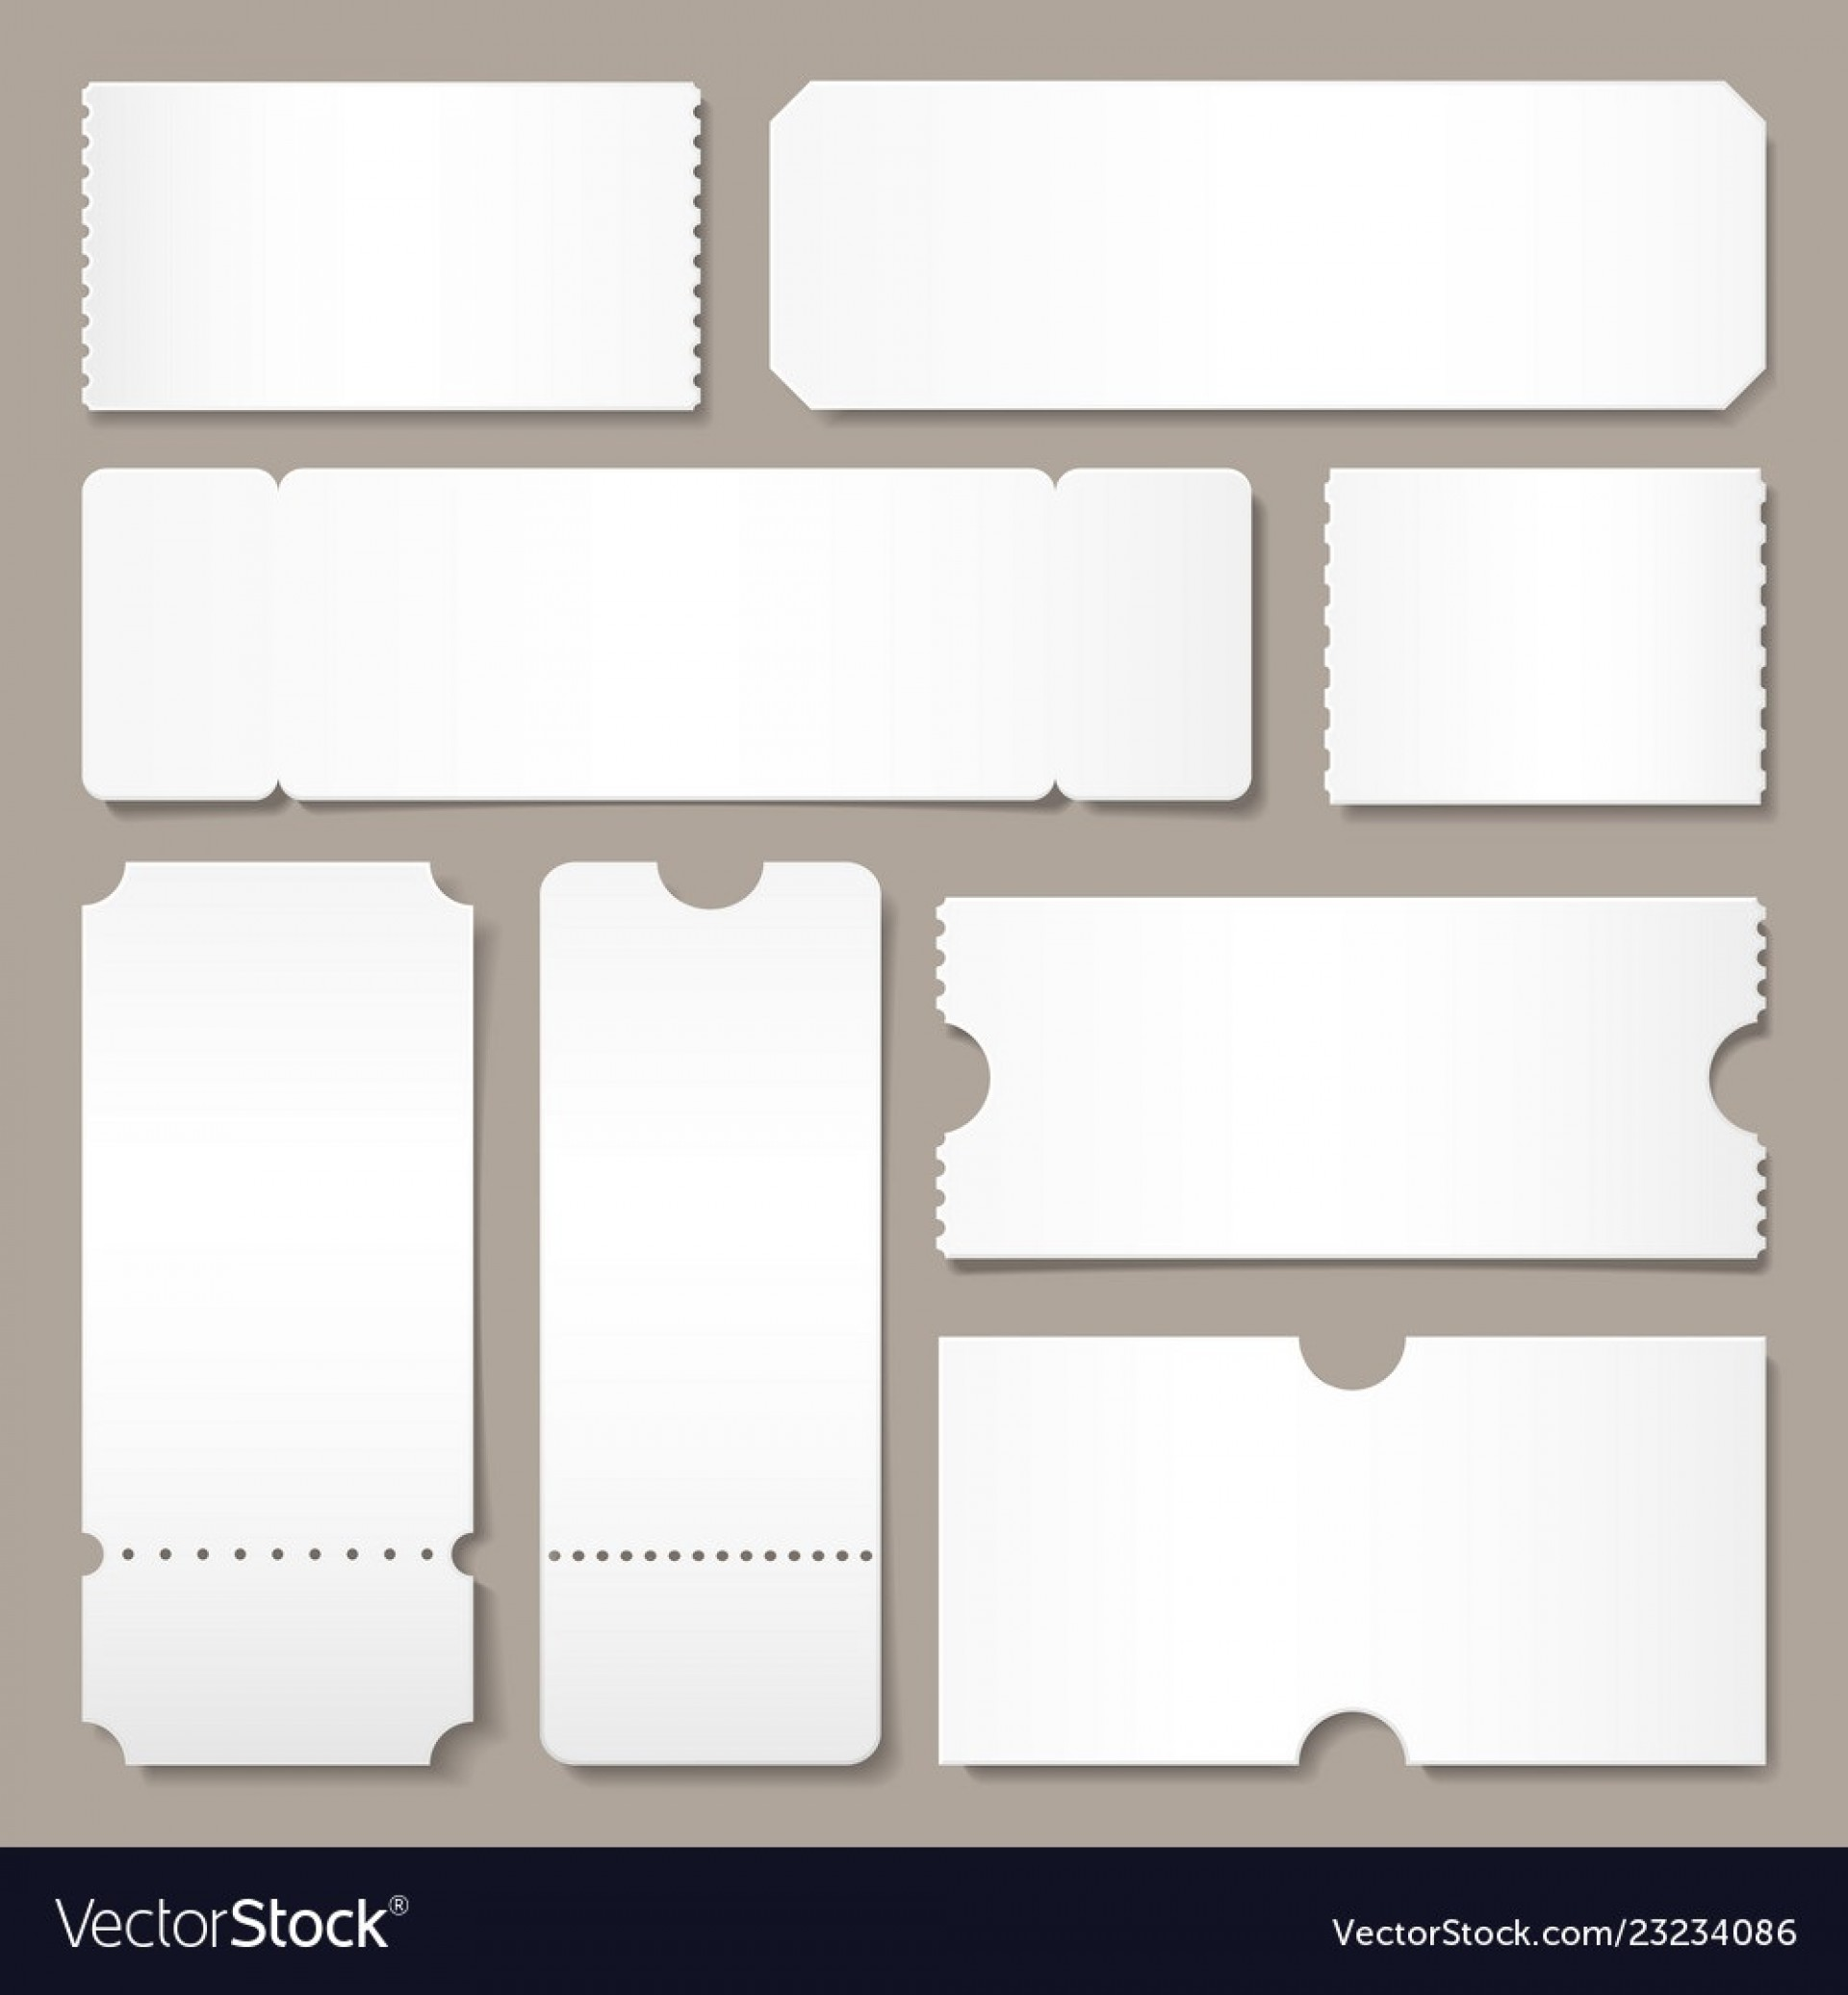 005 Exceptional Free Concert Ticket Printable Picture  Template For Gift1920